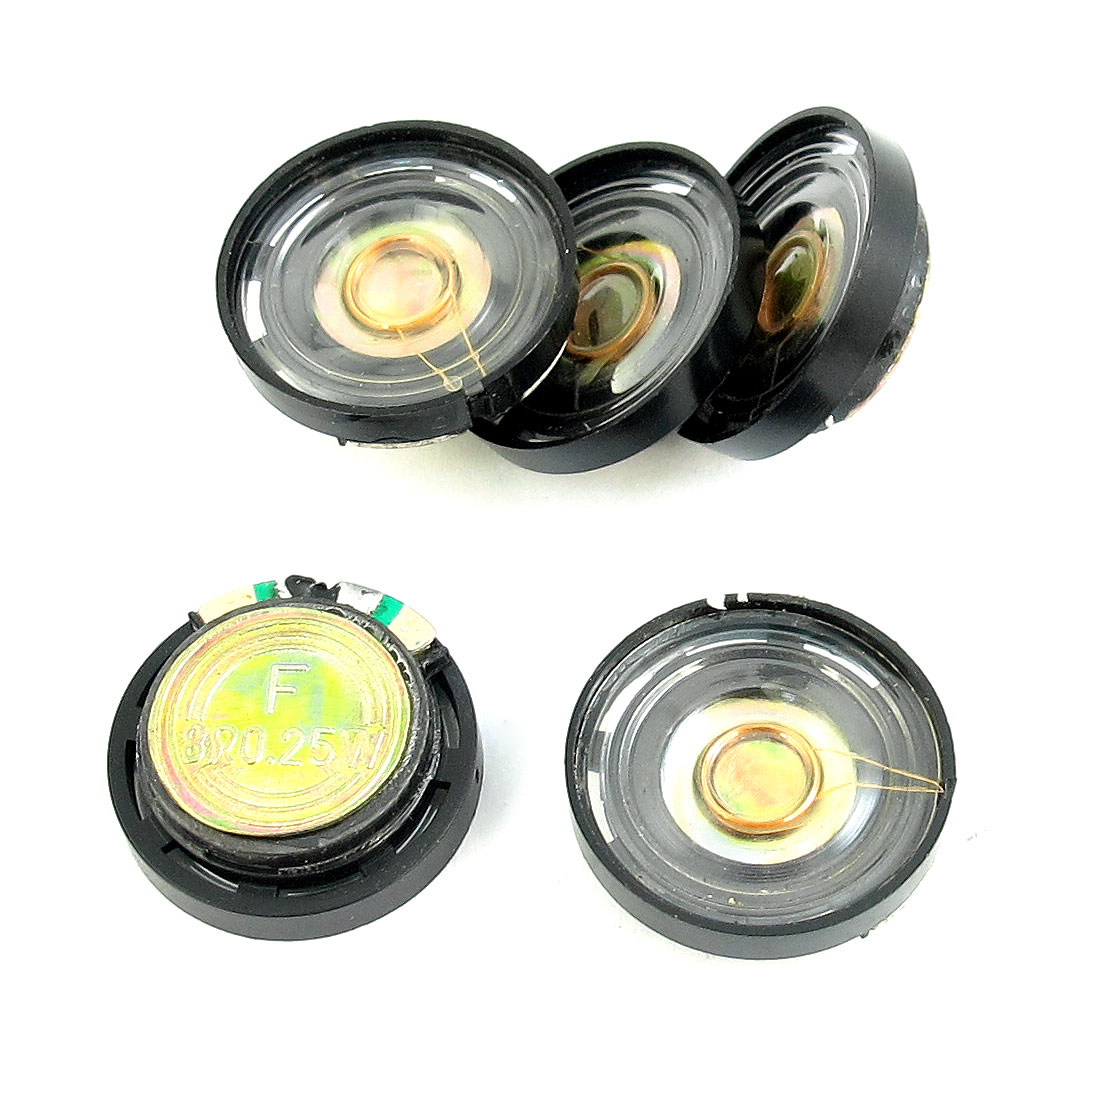 5 Pcs 0.25W 8 Ohm 21mm Diameter Plastic Shell Round Circle Magne Type Speaker Loudspeaker Horn for Radio Electric Toys